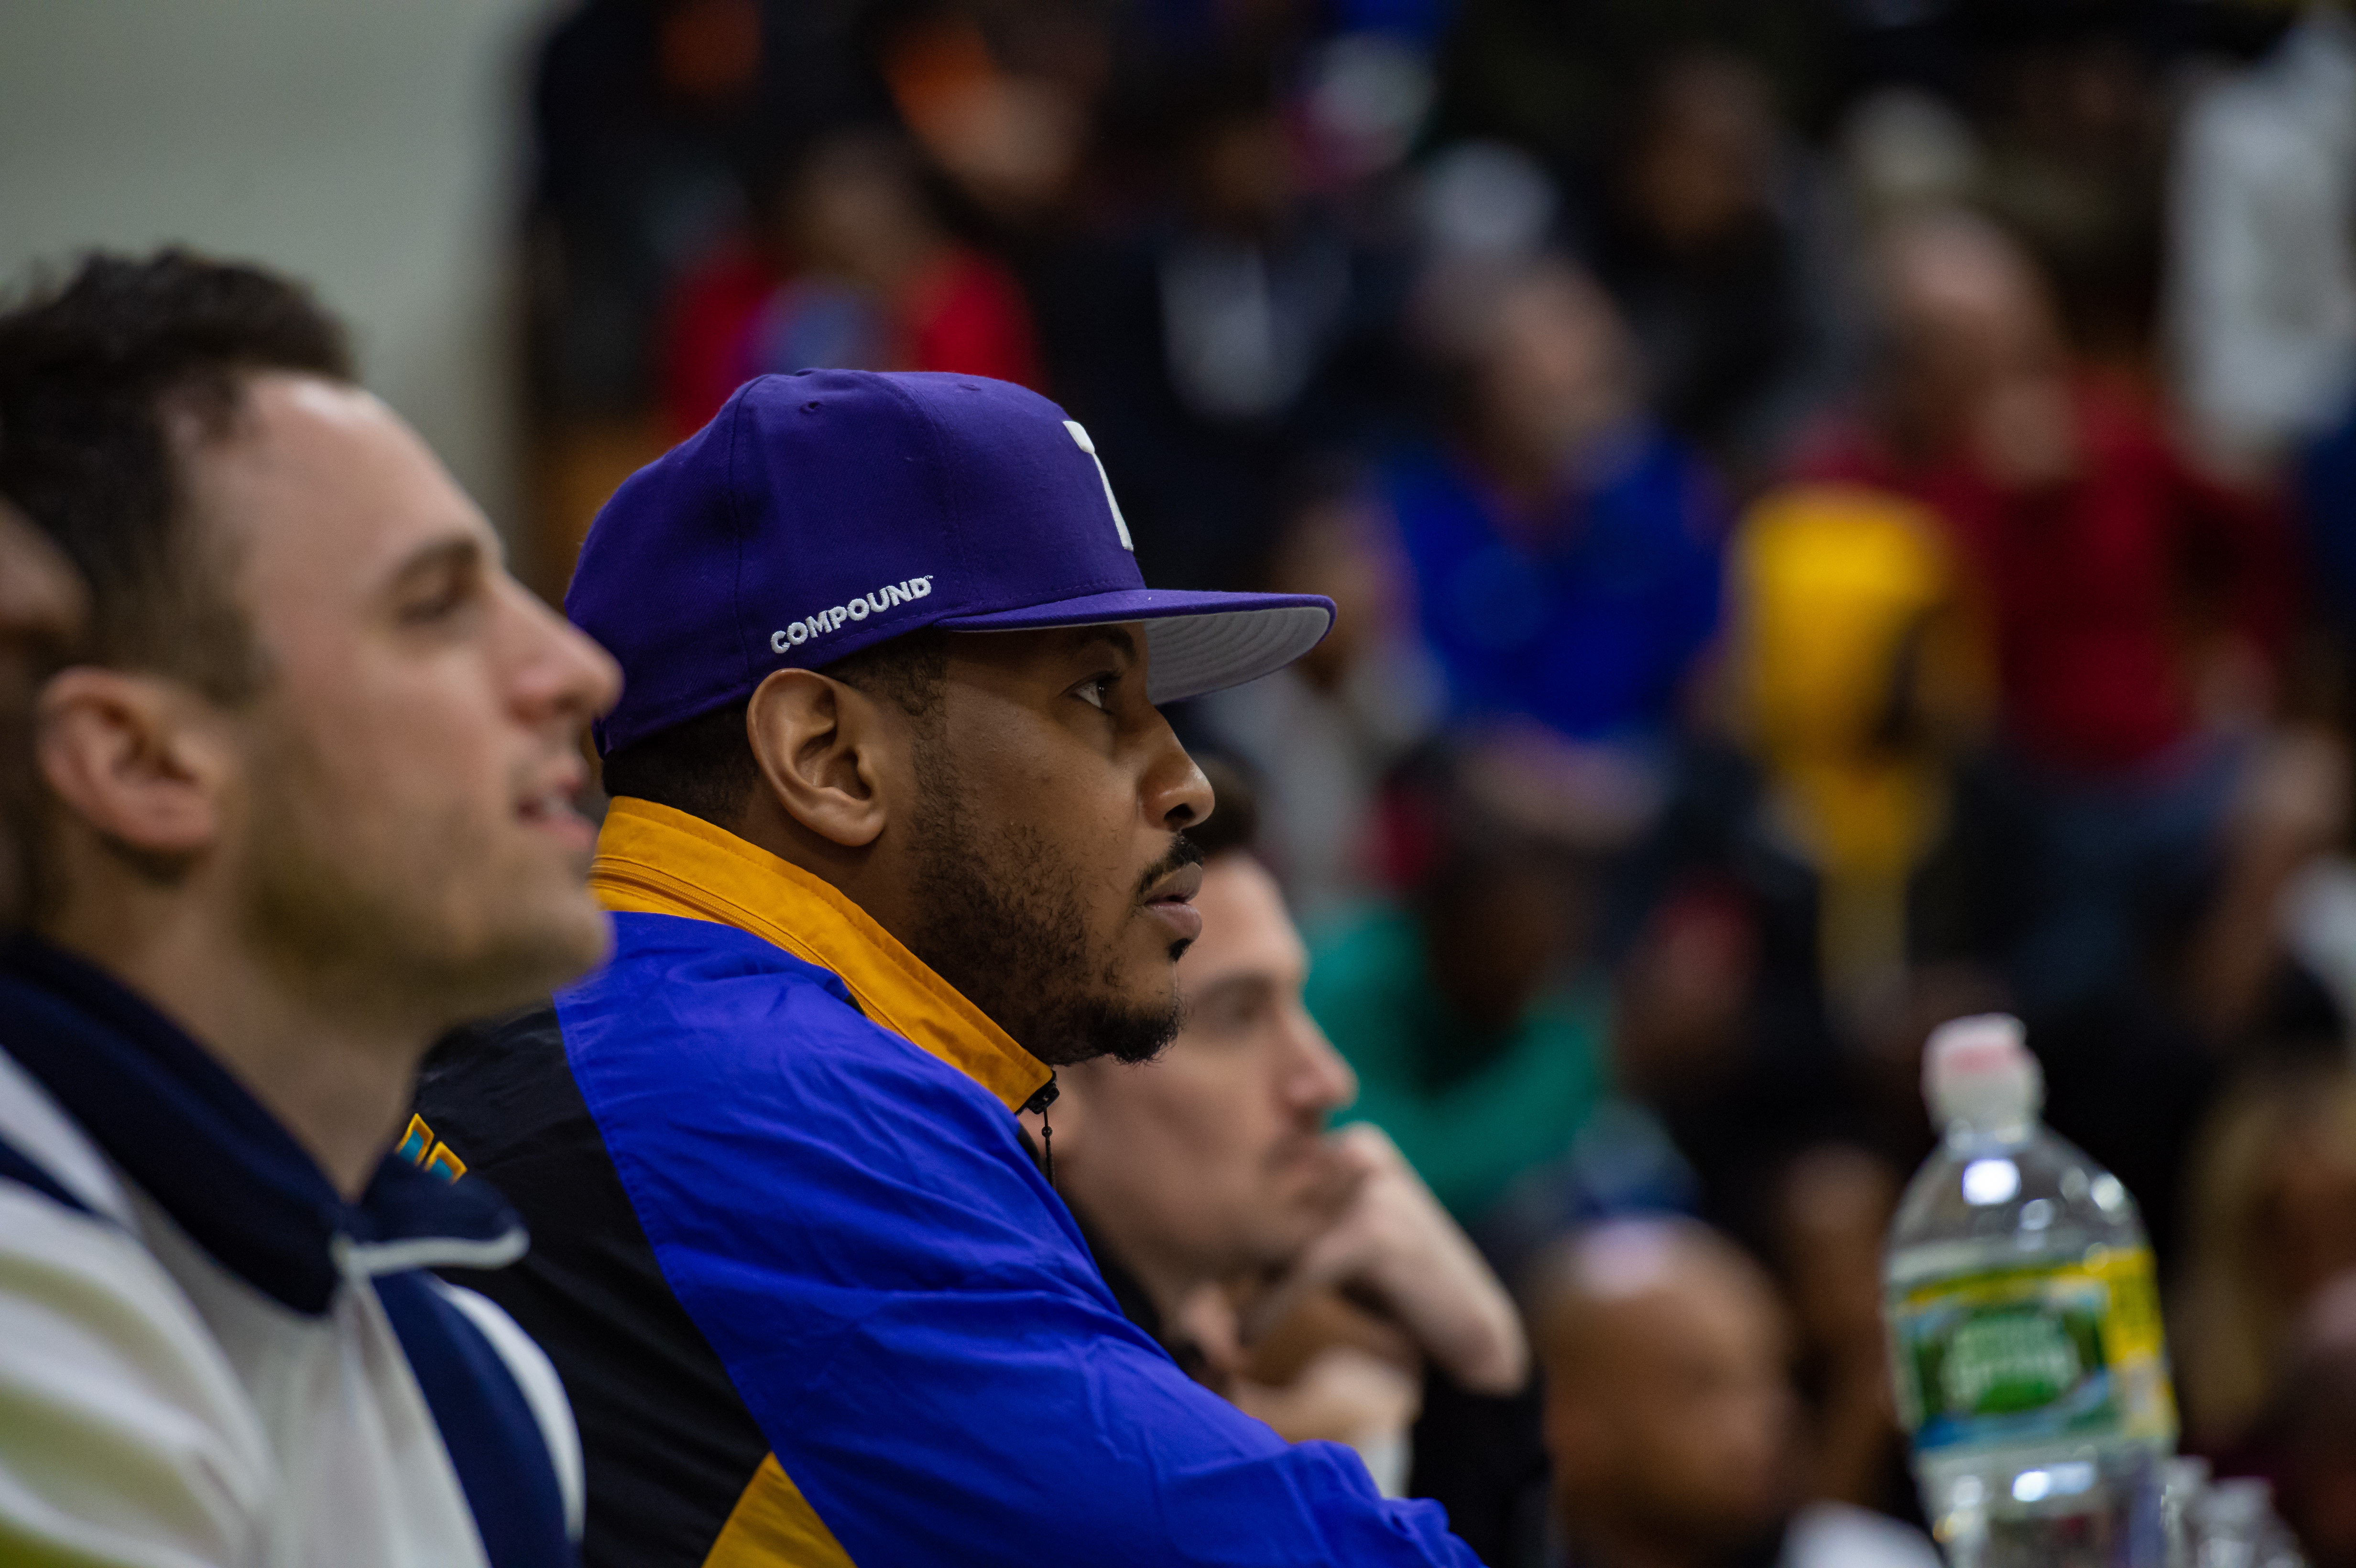 Oak Hill Academy alum Carmelo Anthony takes in the action during an Oak Hill basketball game in 2019